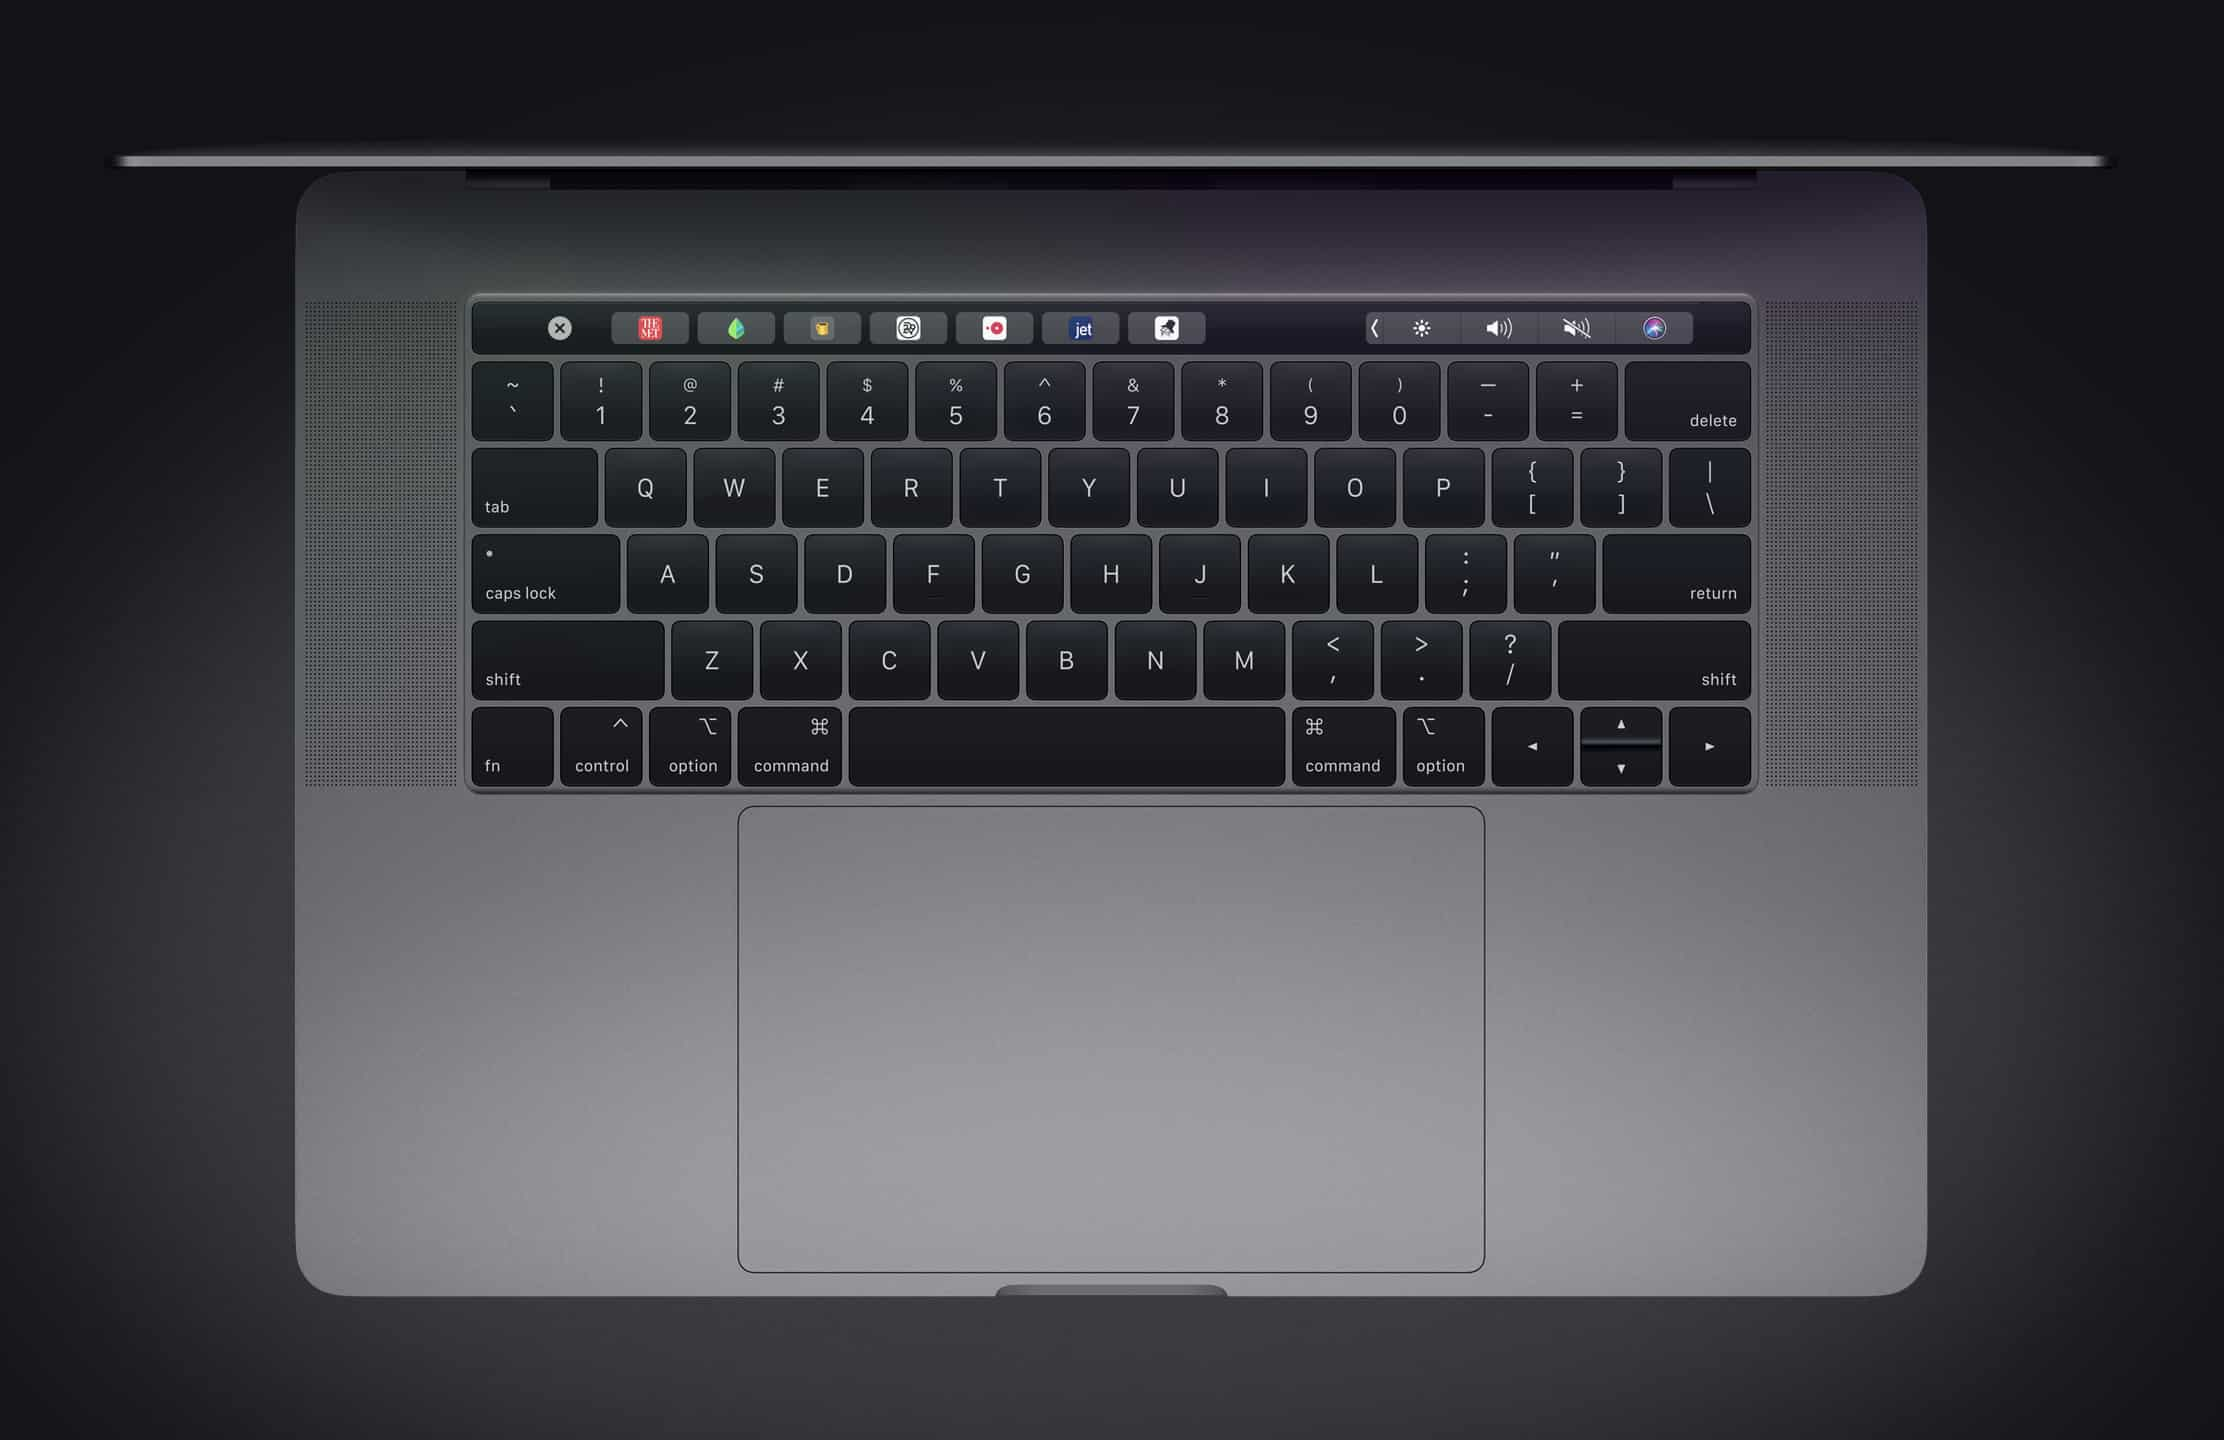 Apple MacBook Pro keyboard